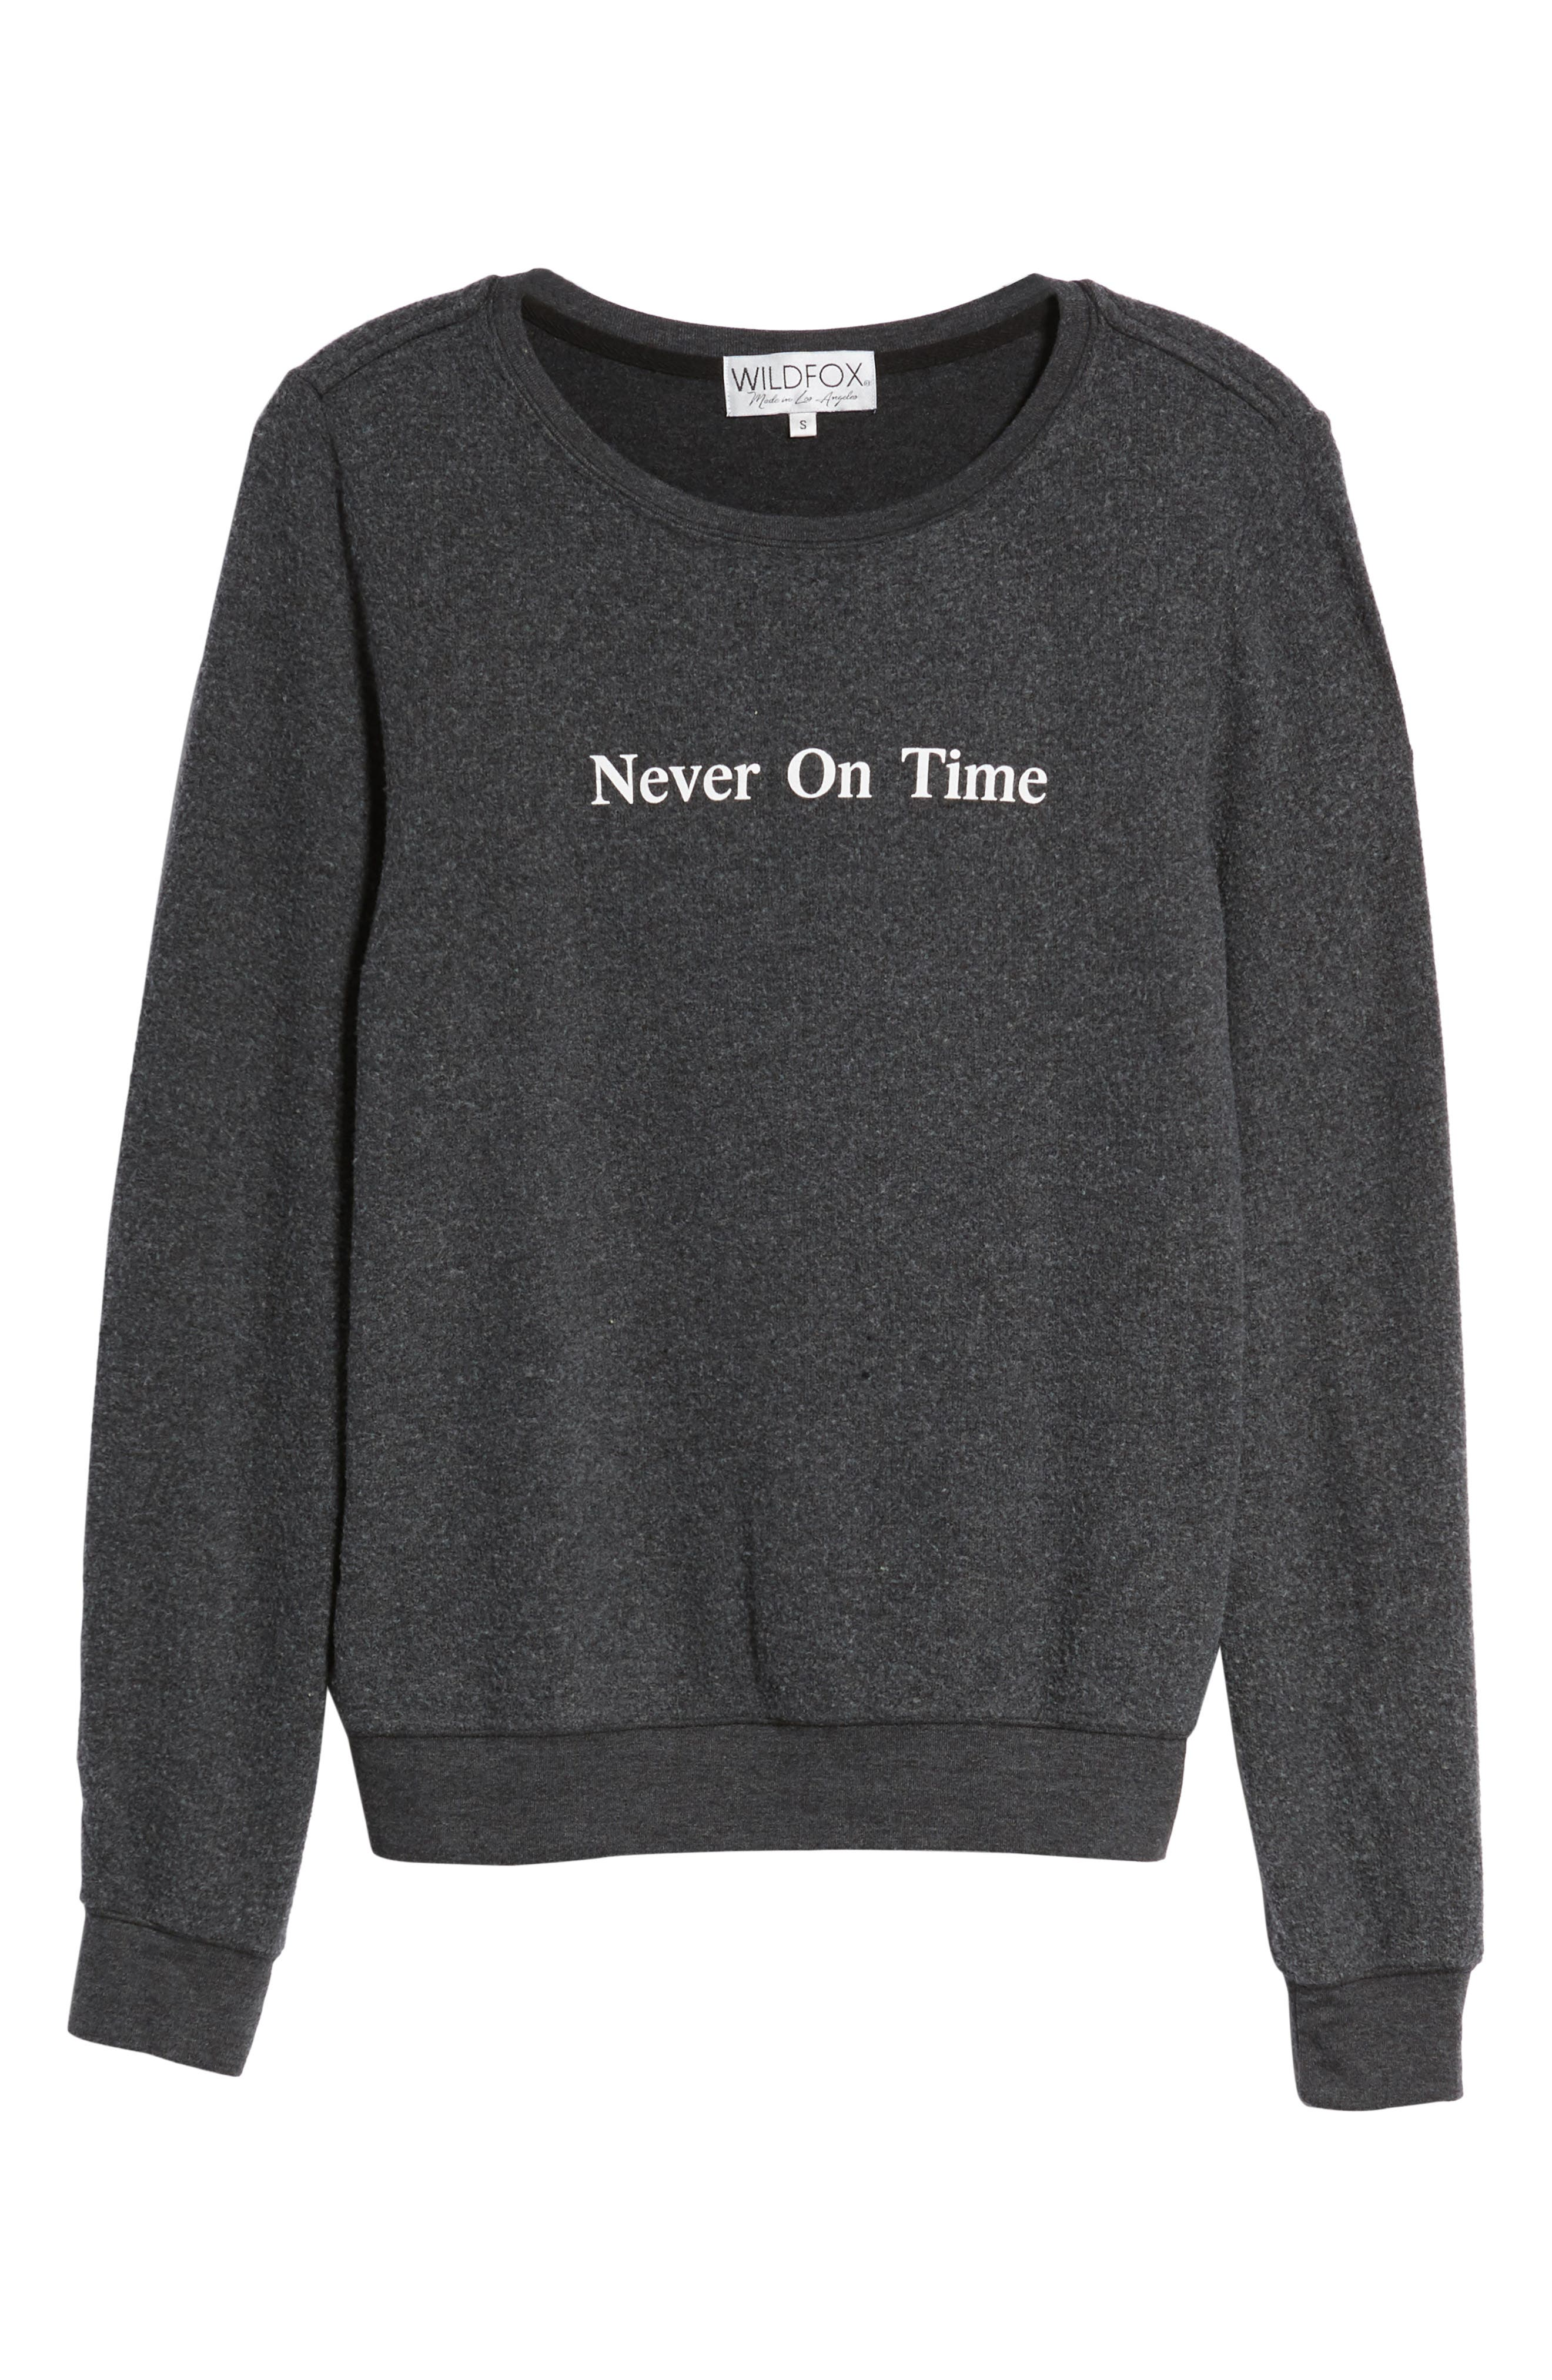 Never on Time Baggy Beach Jumper Pullover,                             Alternate thumbnail 7, color,                             001